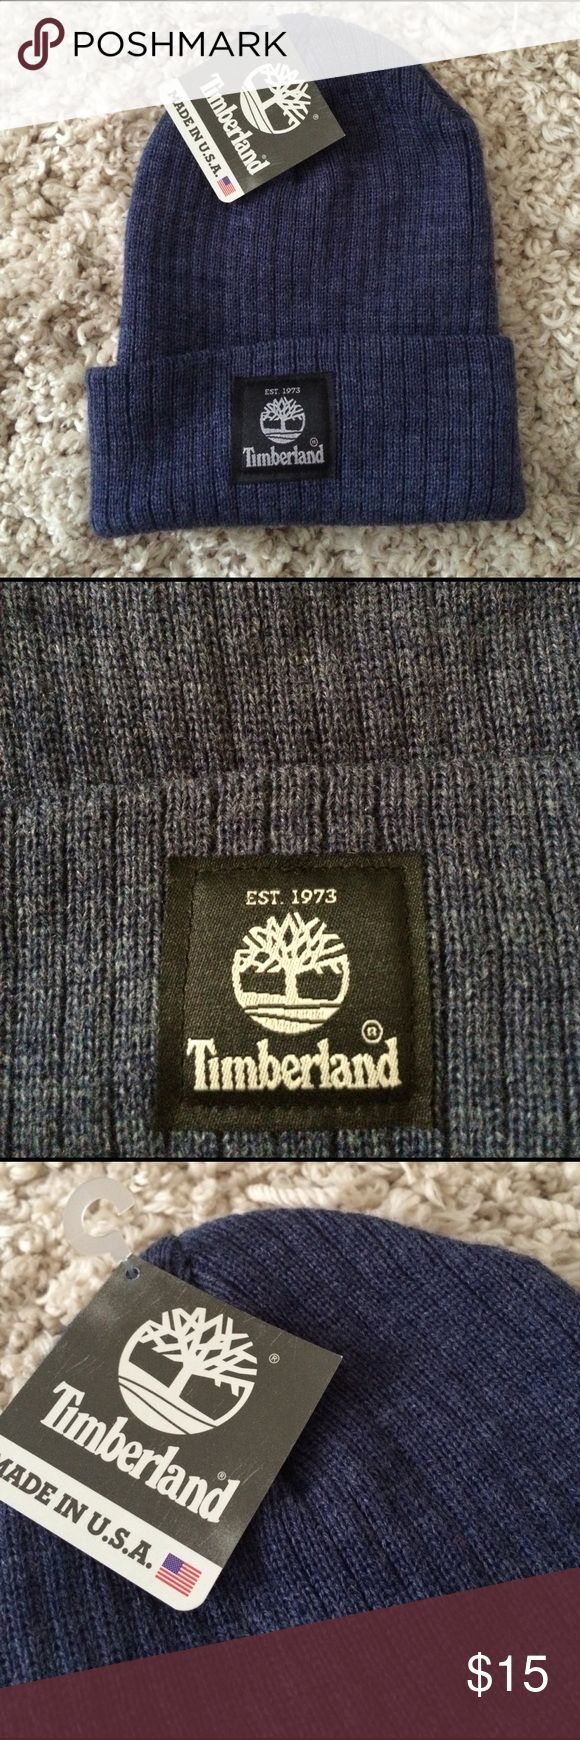 Timberland BNWT blue hat Brand new Timberland hat! No flaws, perfect condition. Timberland Accessories Hats